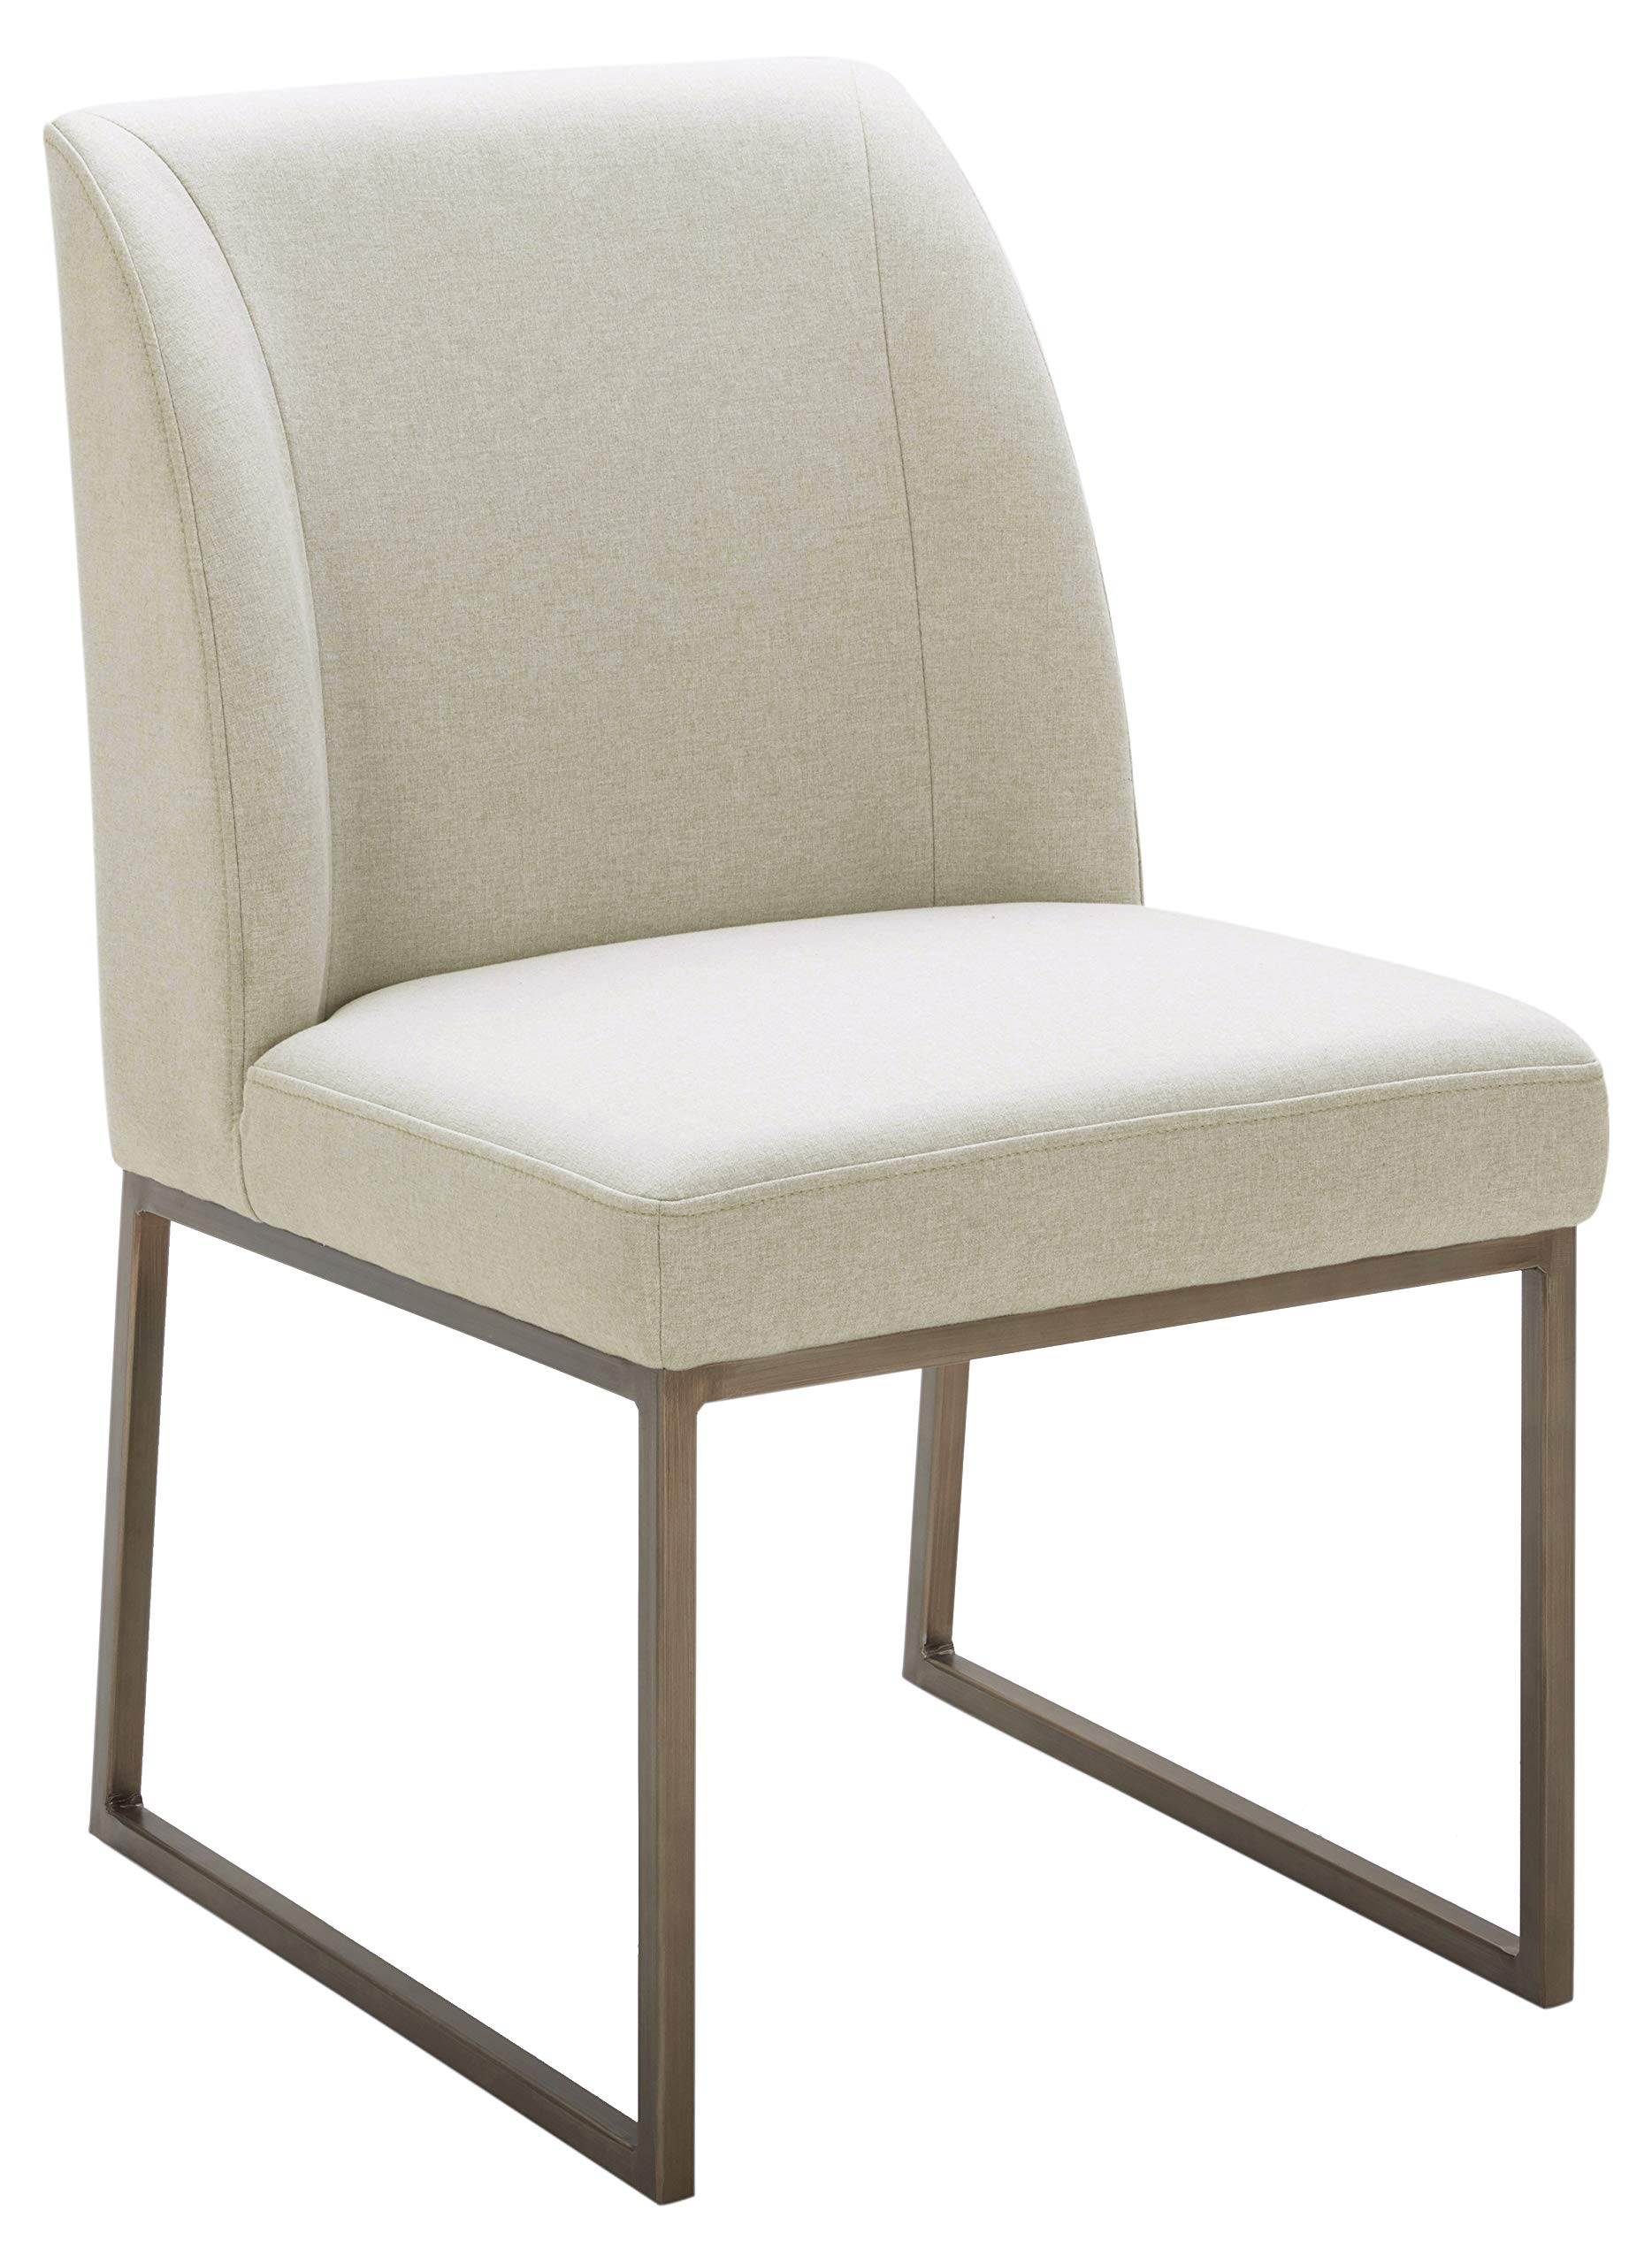 Rivet Contemporary Dining Chair, 34''H, Chalk by Rivet